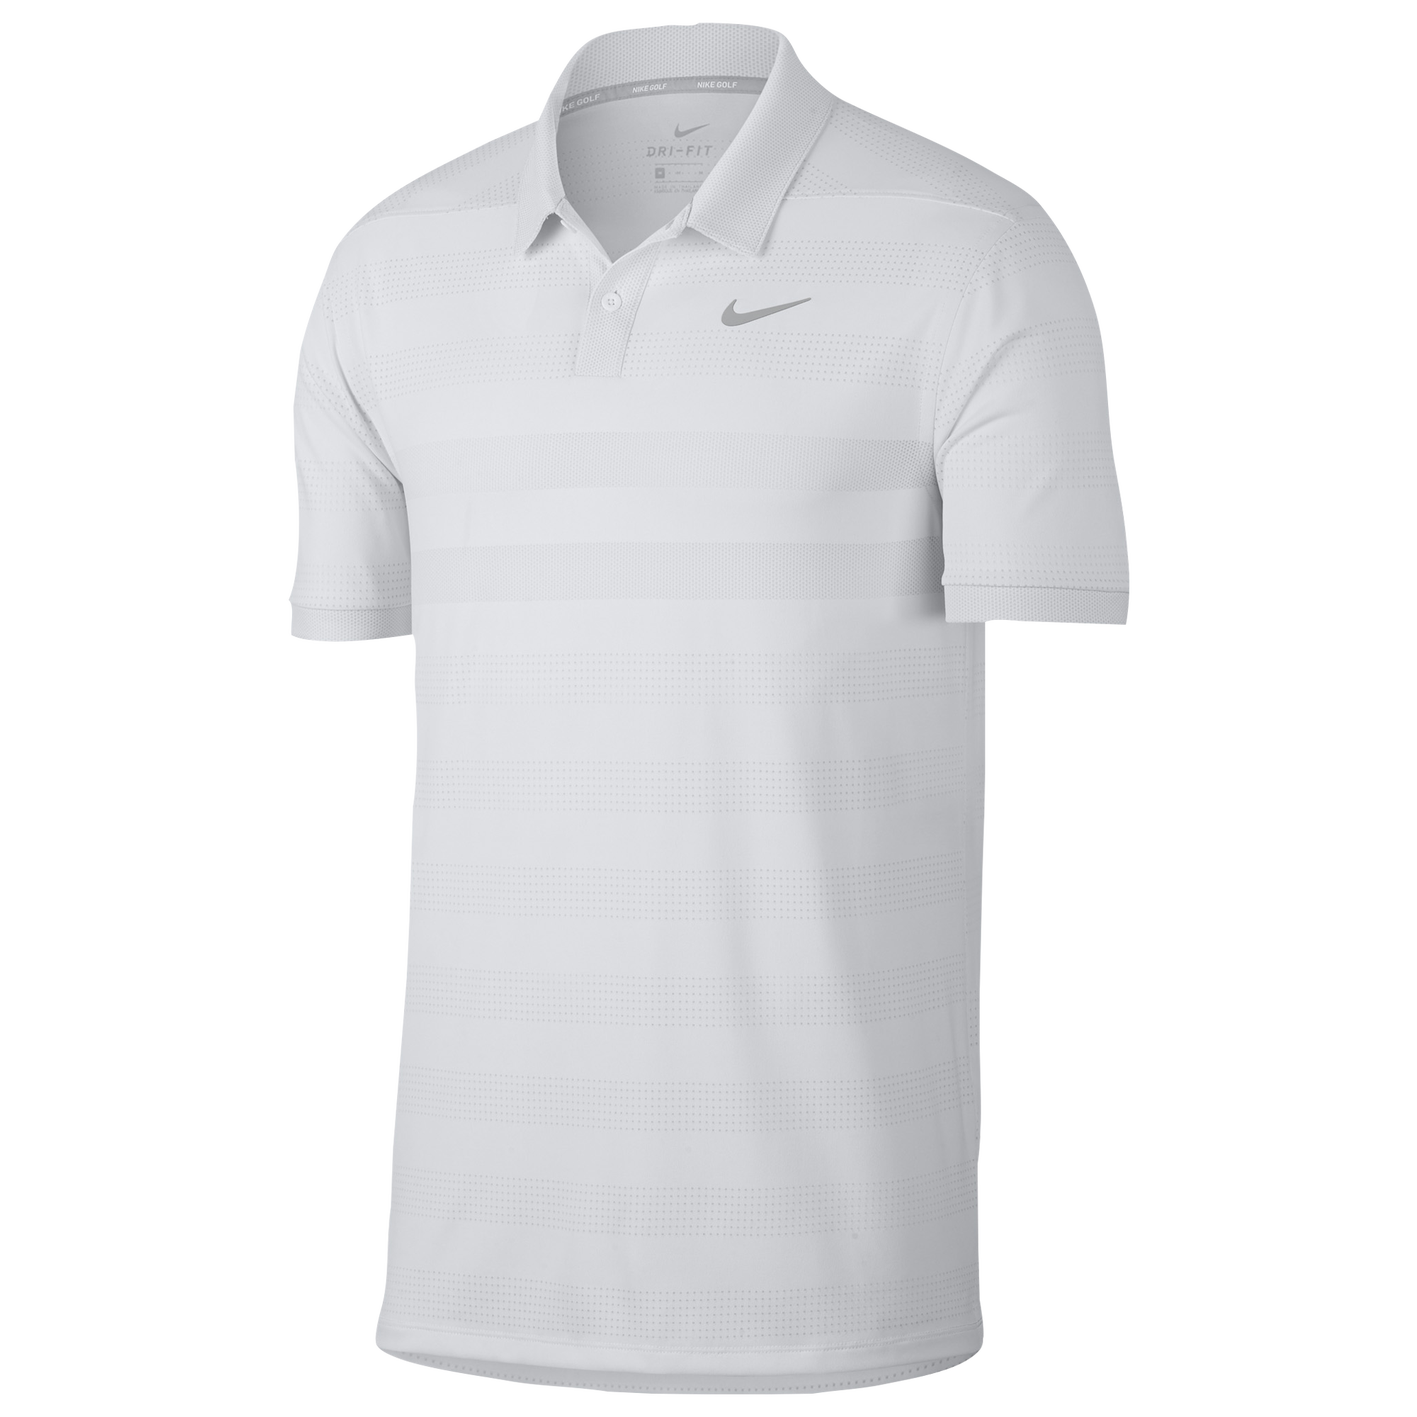 22a4dd1ee7 Nike Zonal Cooling Stripe Golf Polo - Men's - Golf - Clothing ...